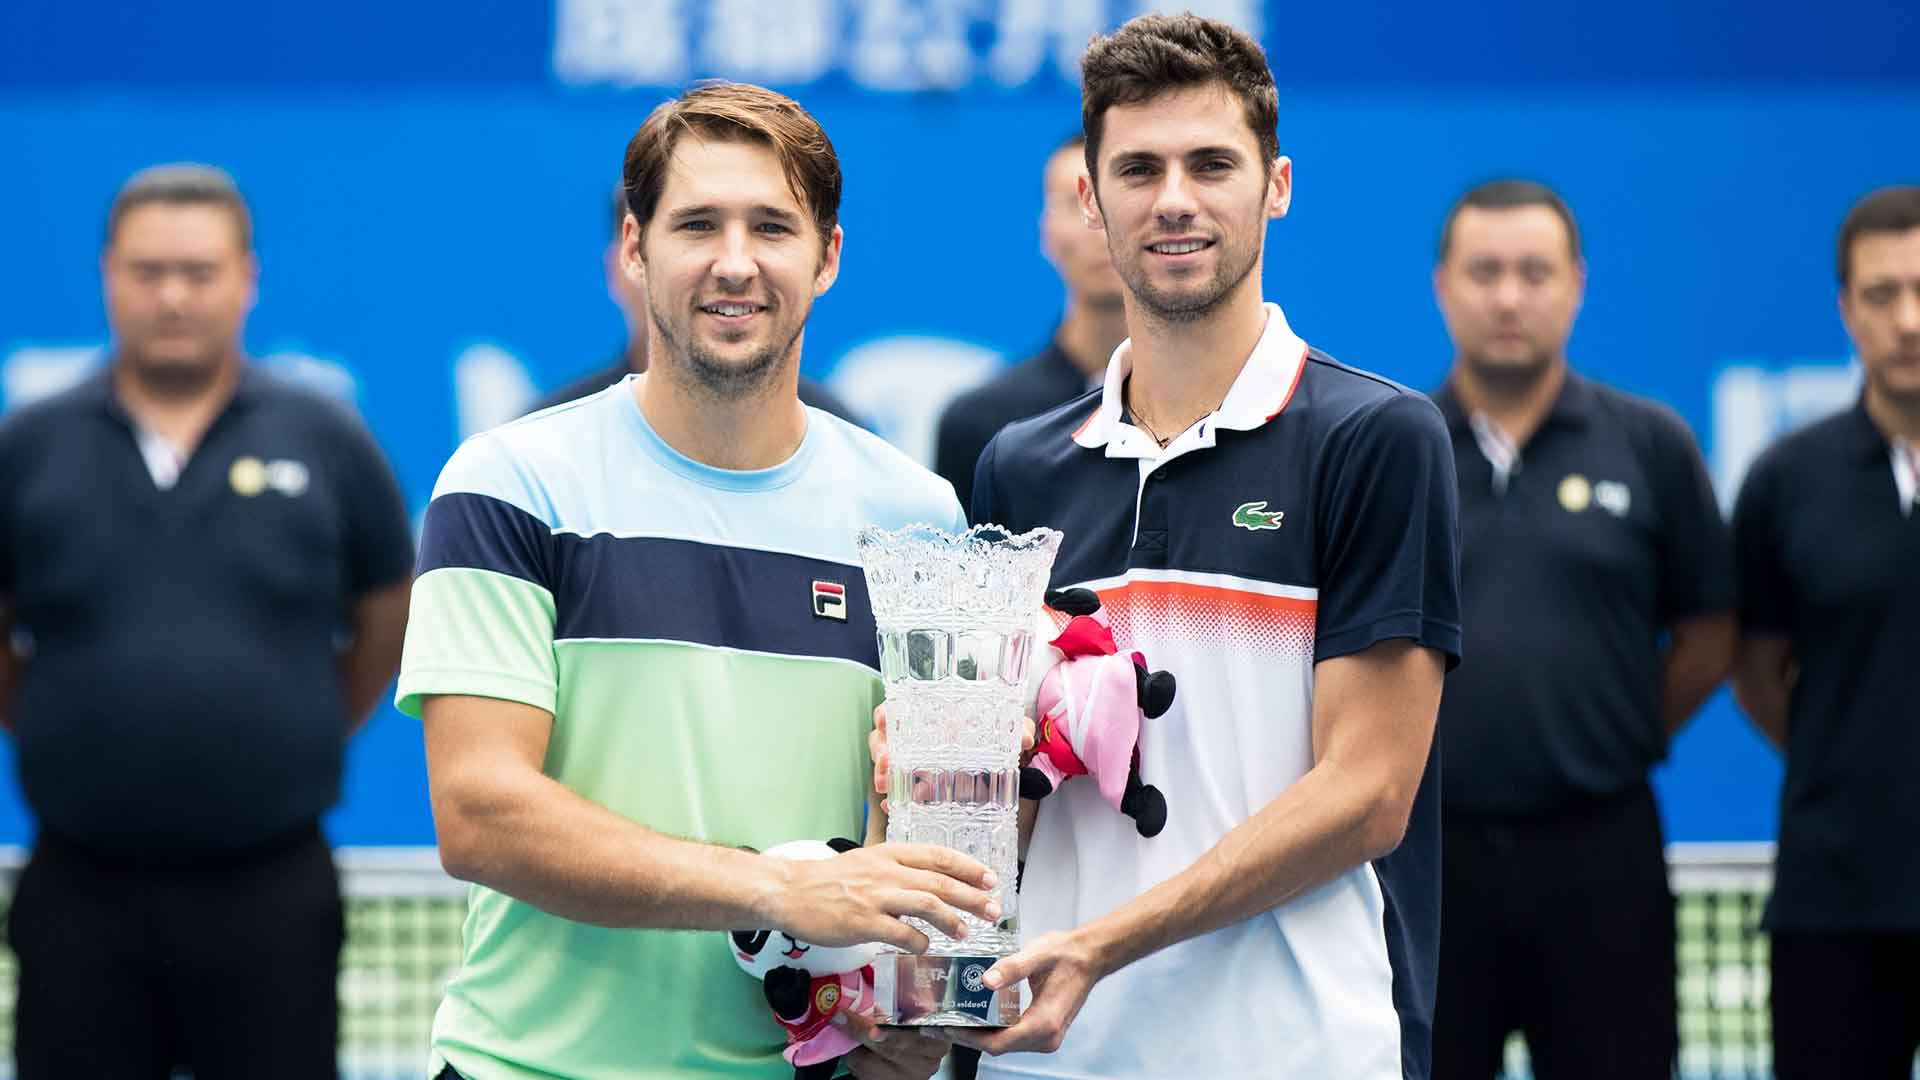 Dusan Lajovic and Nikola Cacic lift their first tour-level trophy as a team.